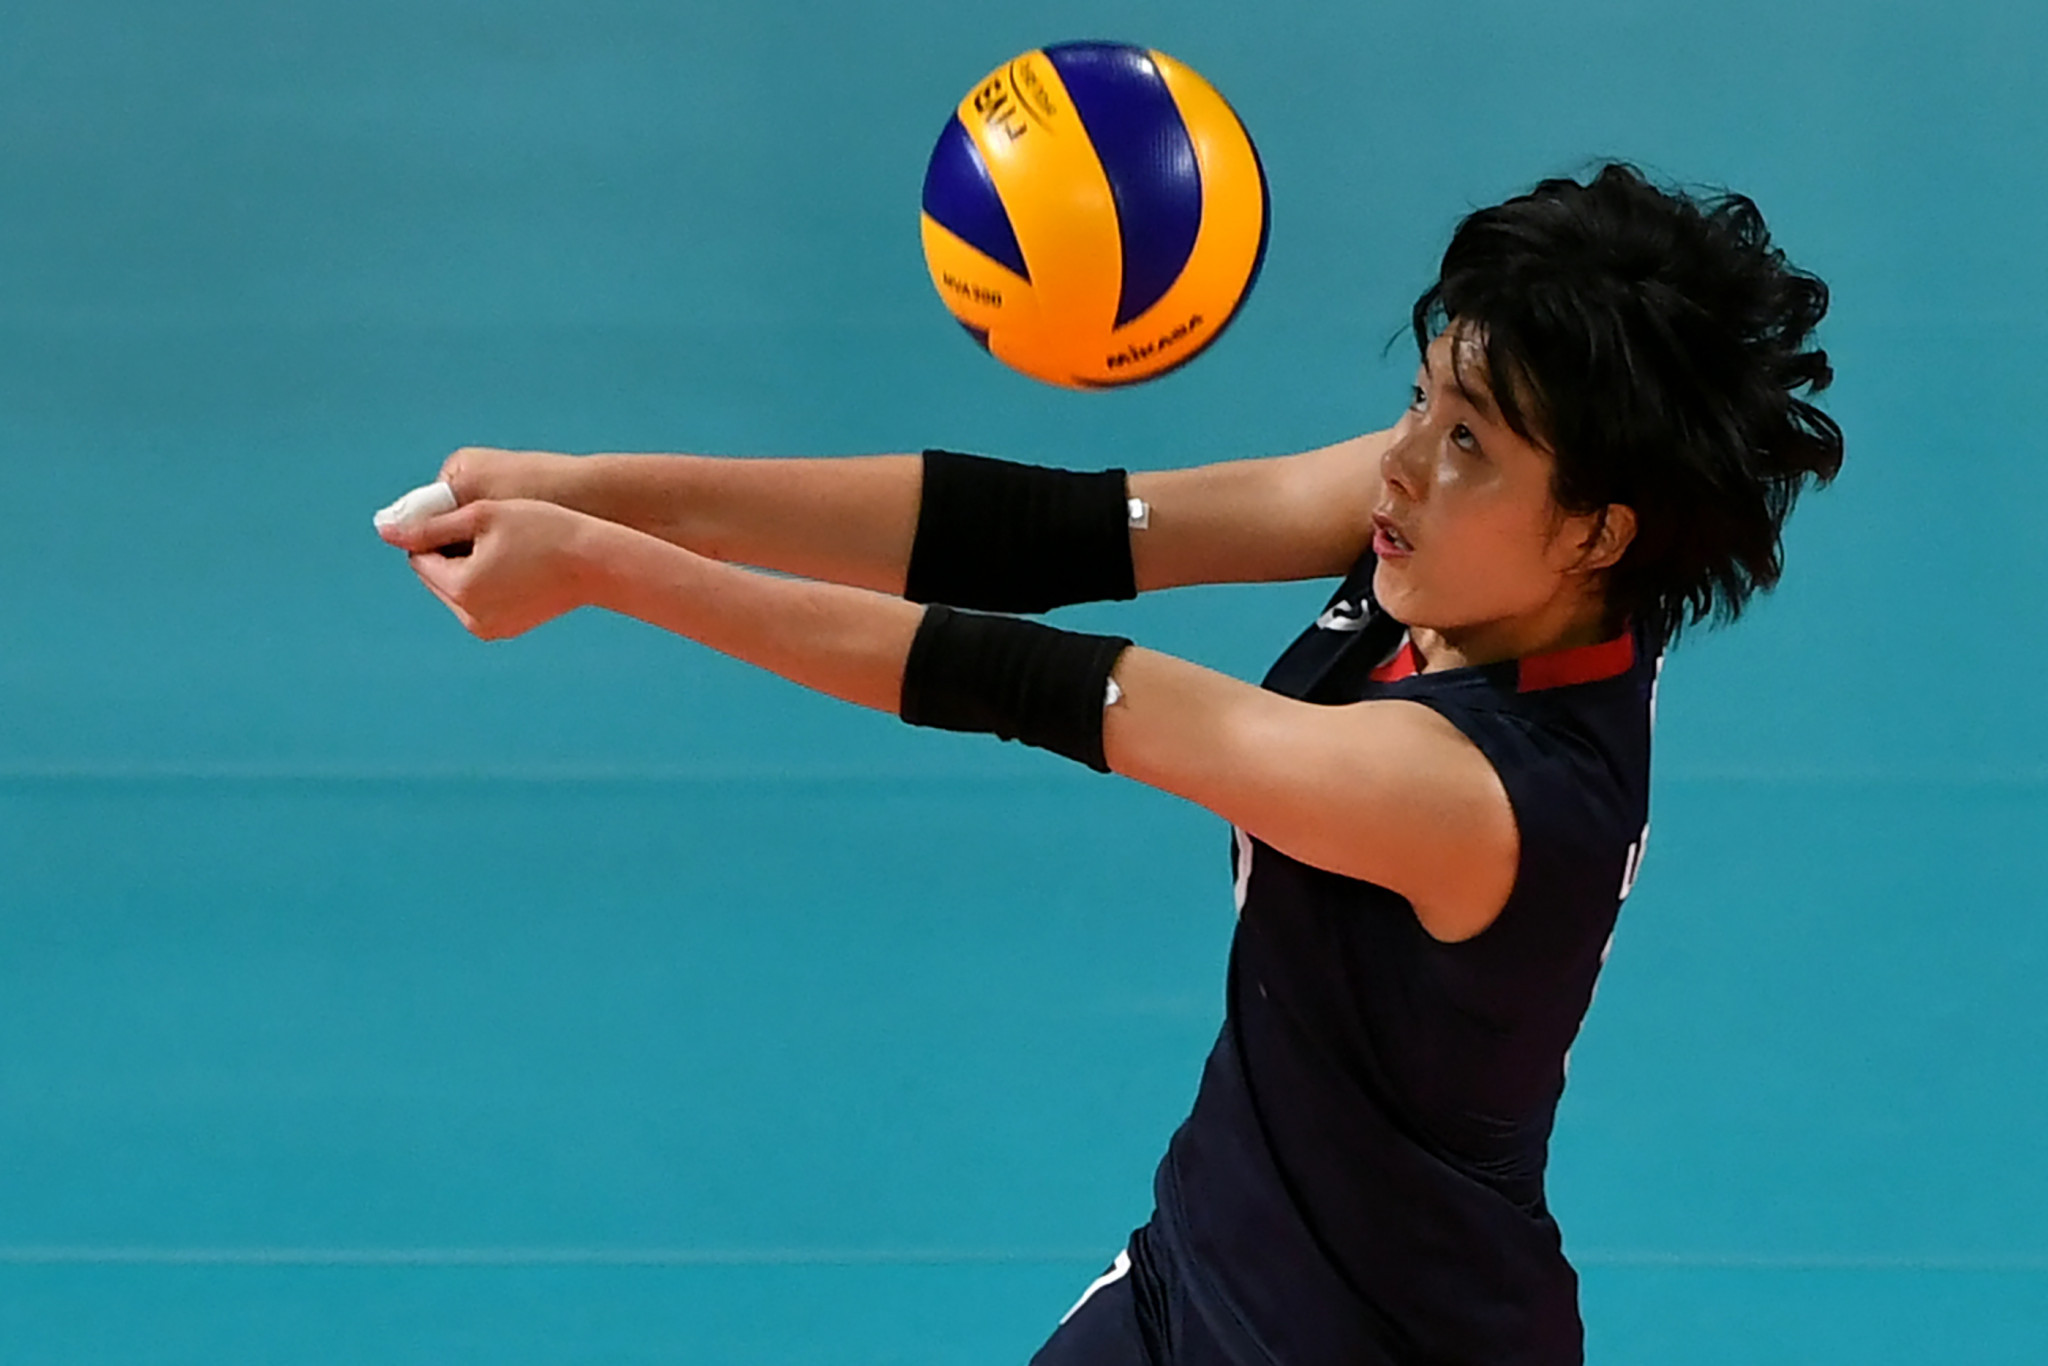 South Korean volleyball twins face Tokyo 2020 ban over school bullying claims